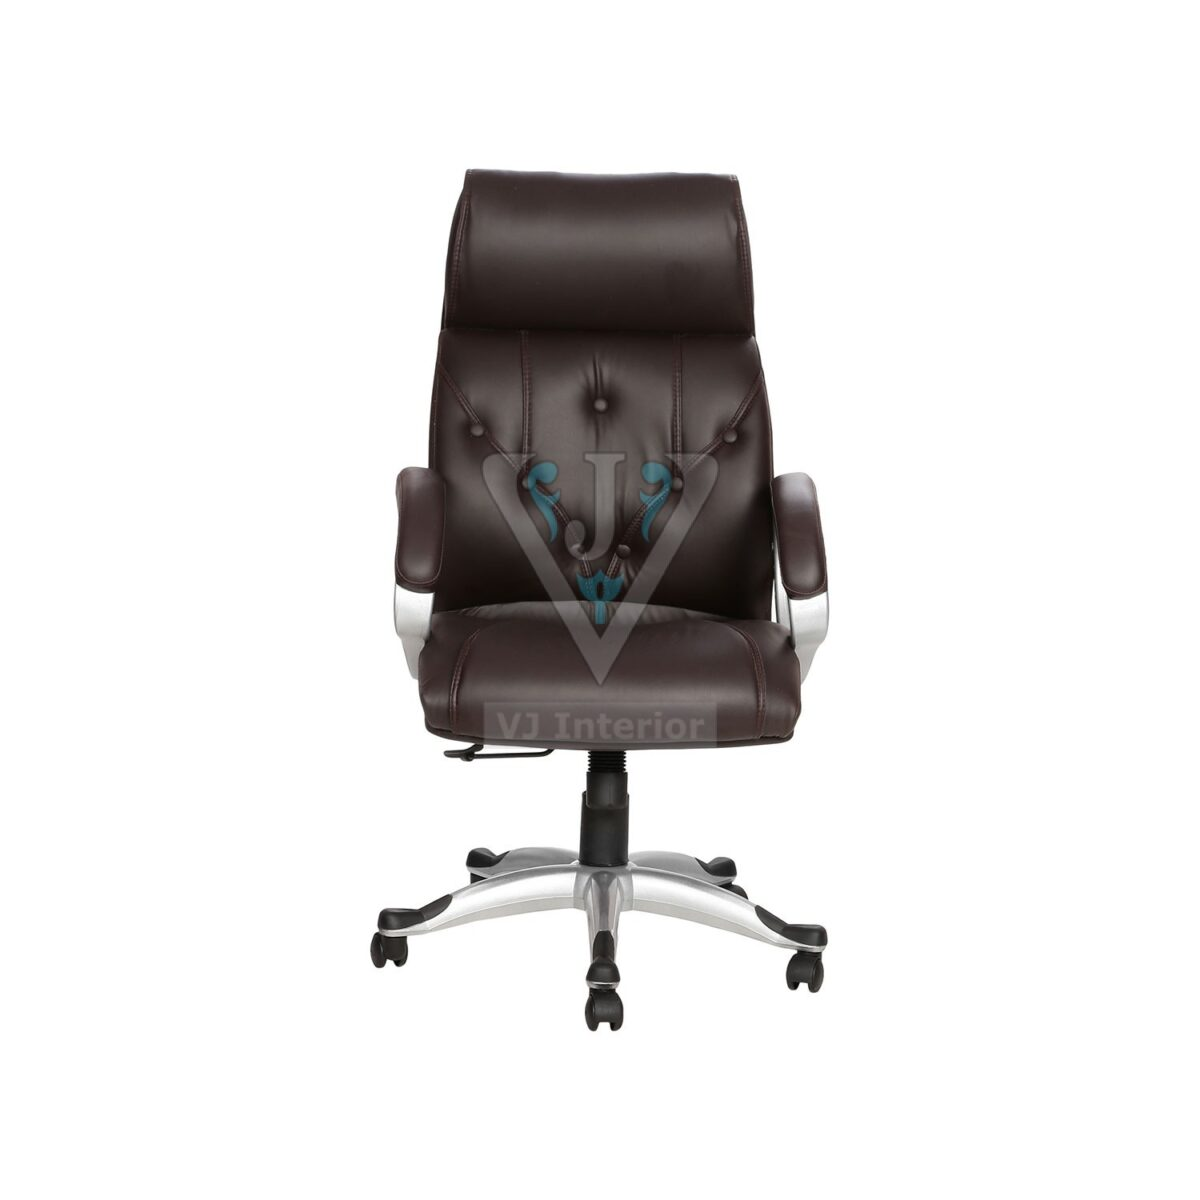 THE SIETE HB EXECUTIVE CHAIR BROWN